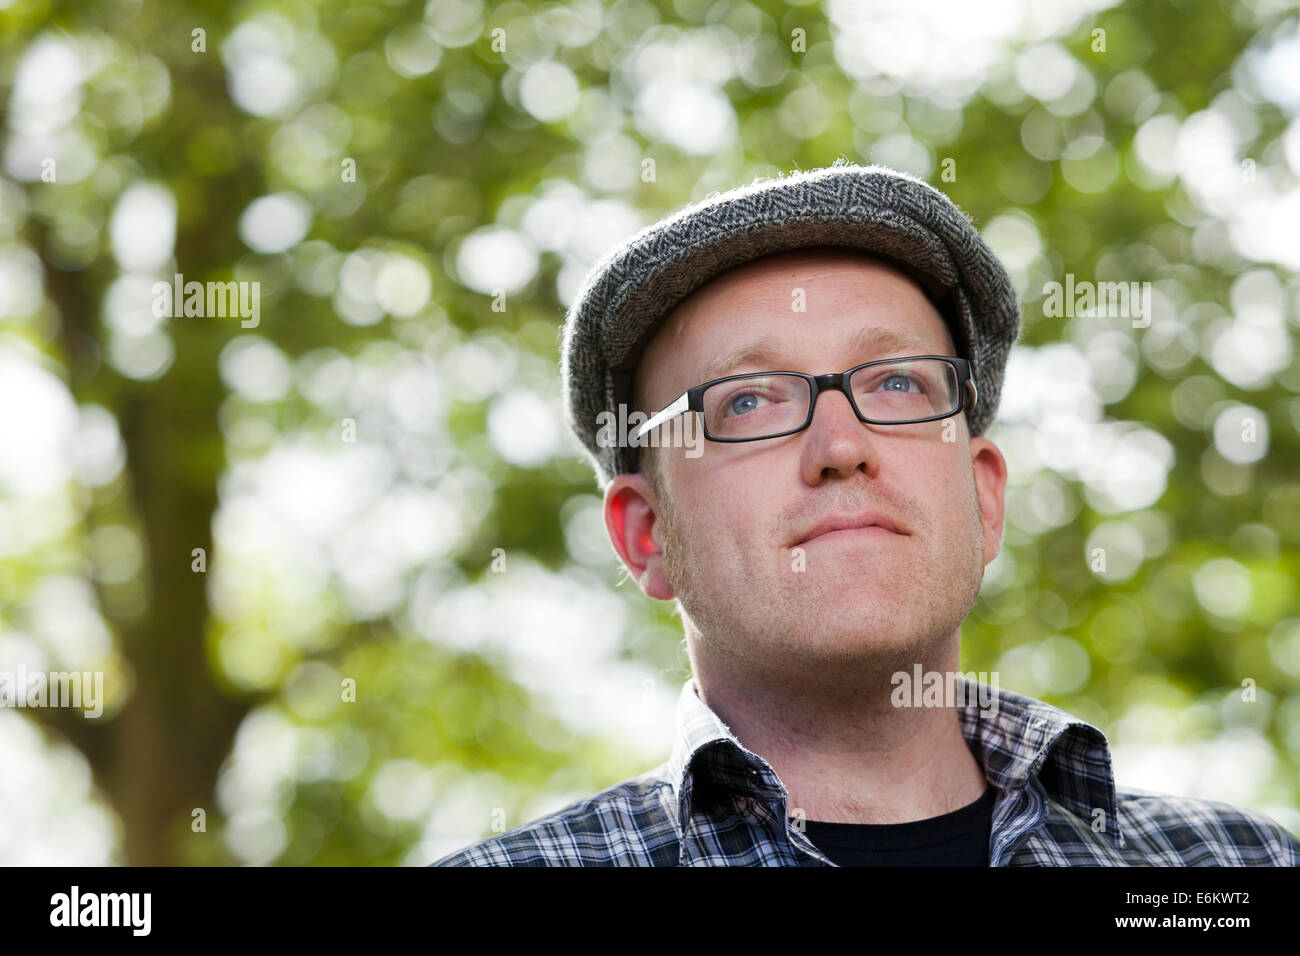 Edinburgh, Scotland, UK. 24th Aug, 2014. Neill Cameron, cartoonist and writer, at the Edinburgh International Book - Stock Image